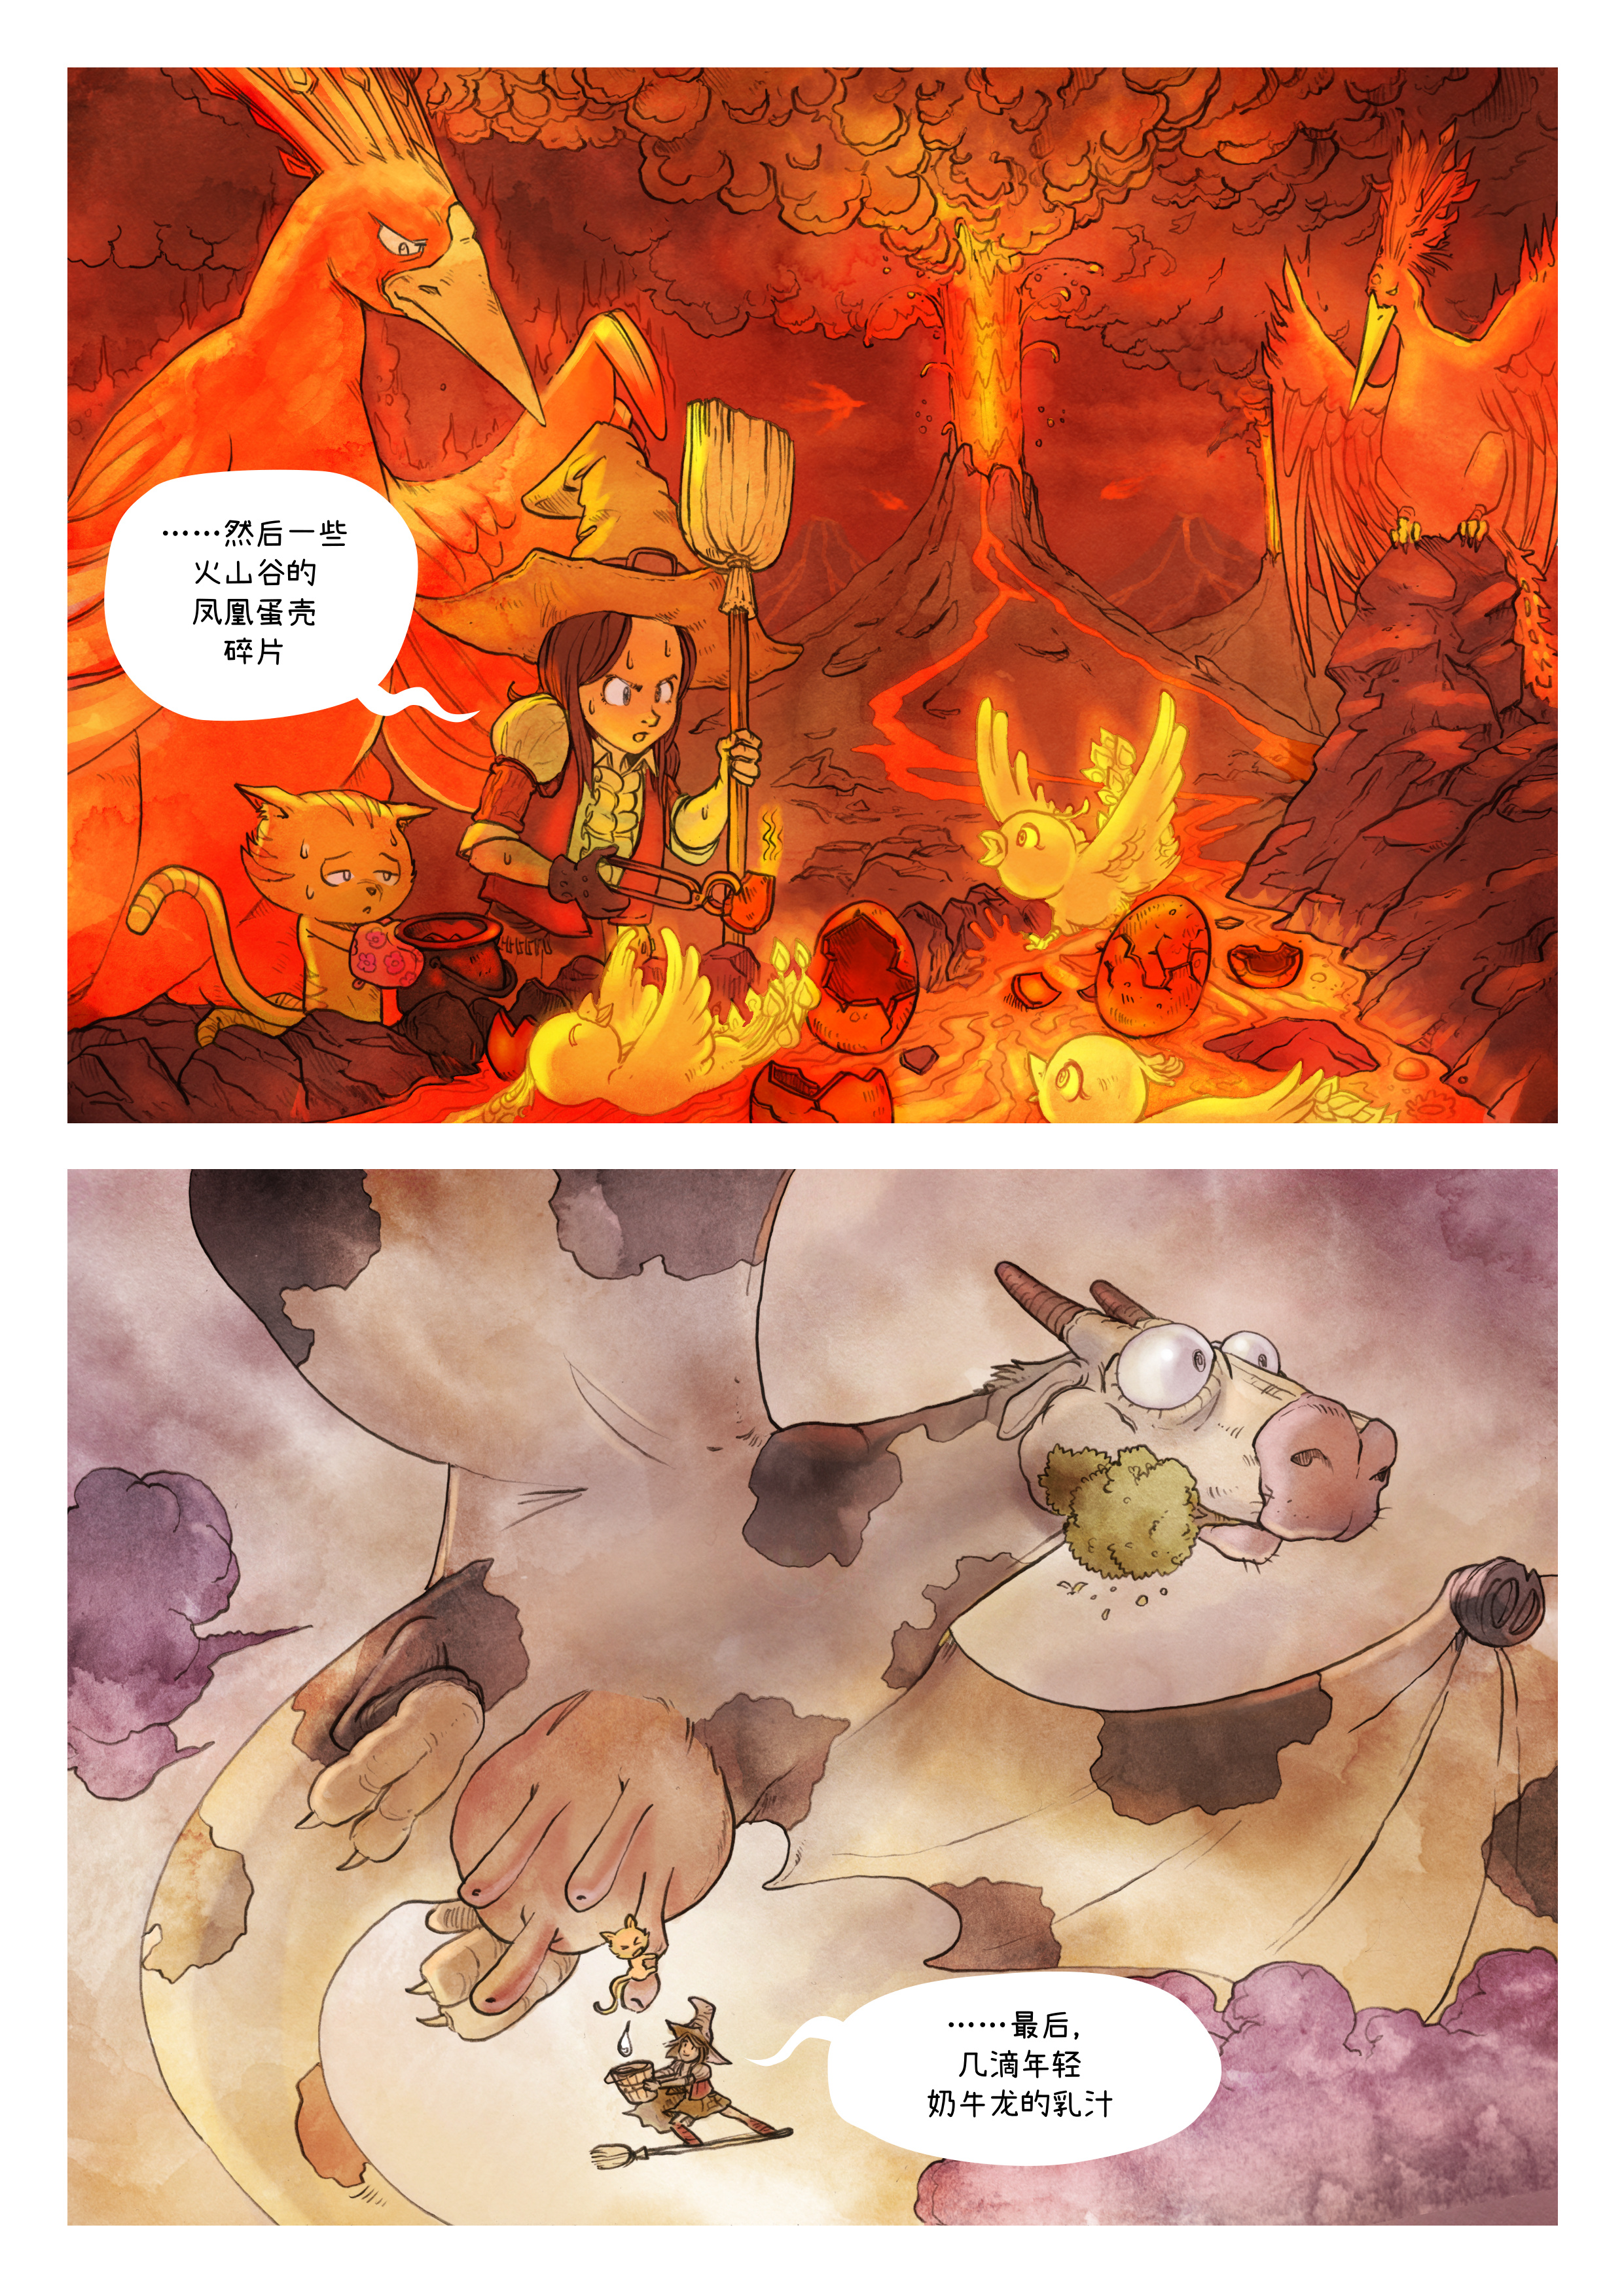 A webcomic page of Pepper&Carrot, 漫画全集 3 [cn], 页面 6